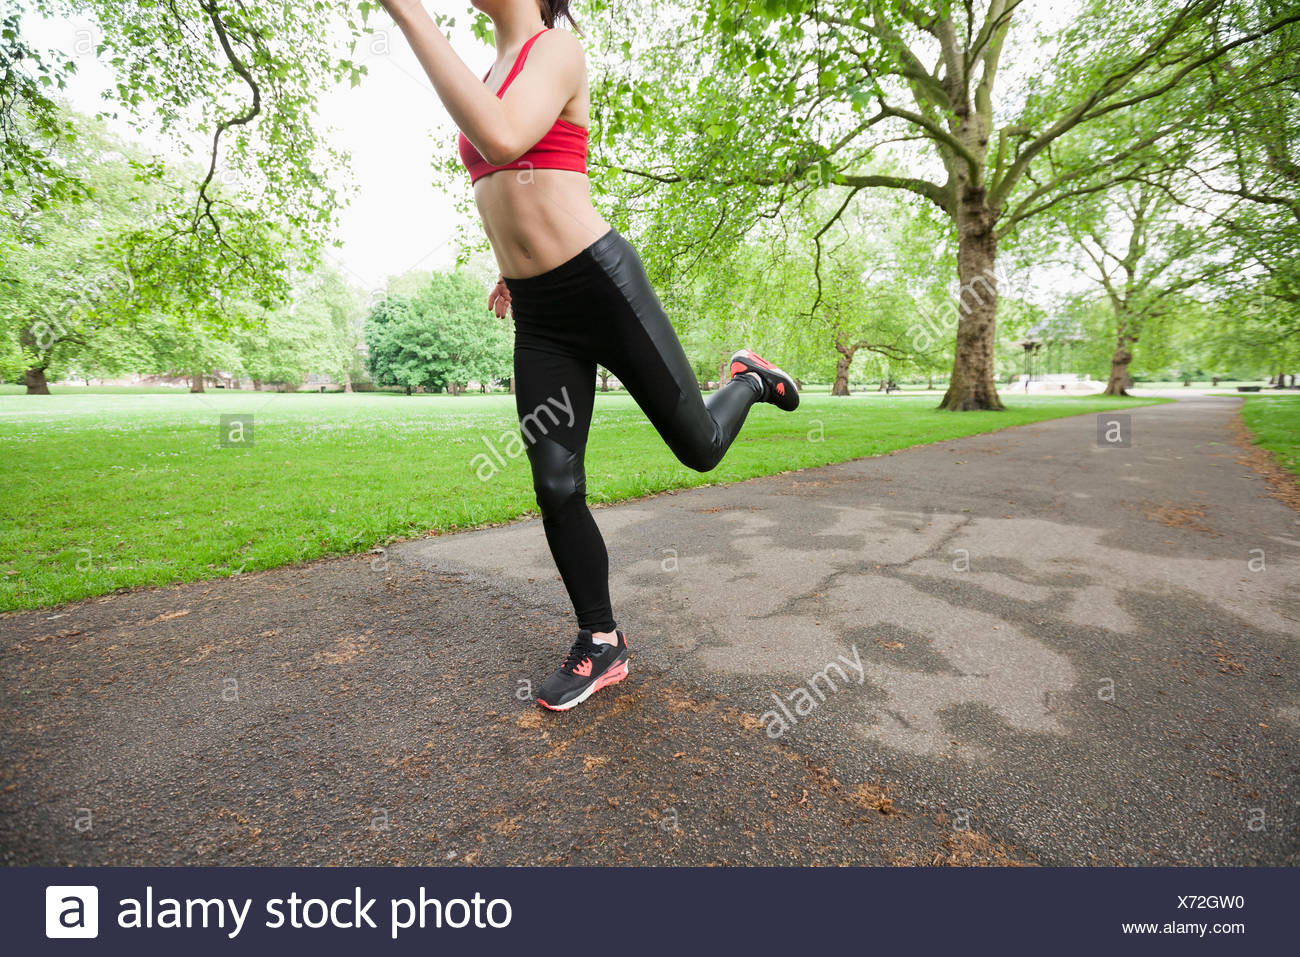 Low section of young woman jogging in park - Stock Image